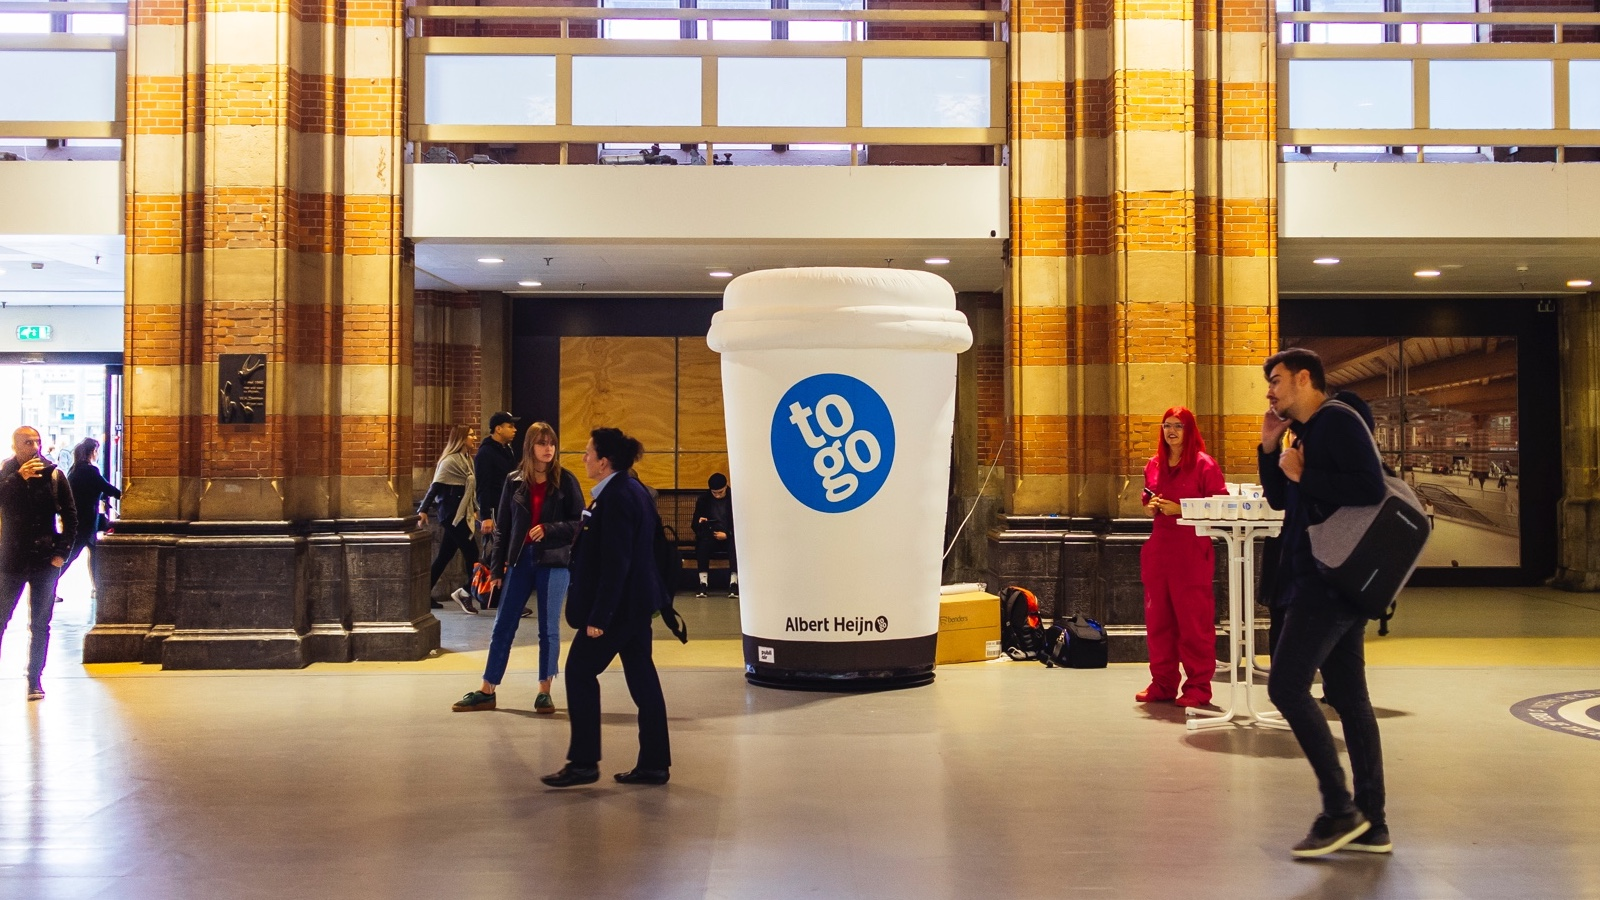 Opblaasbare koffiebeker thema activatie giant coffeecup theme activation voor AH to go